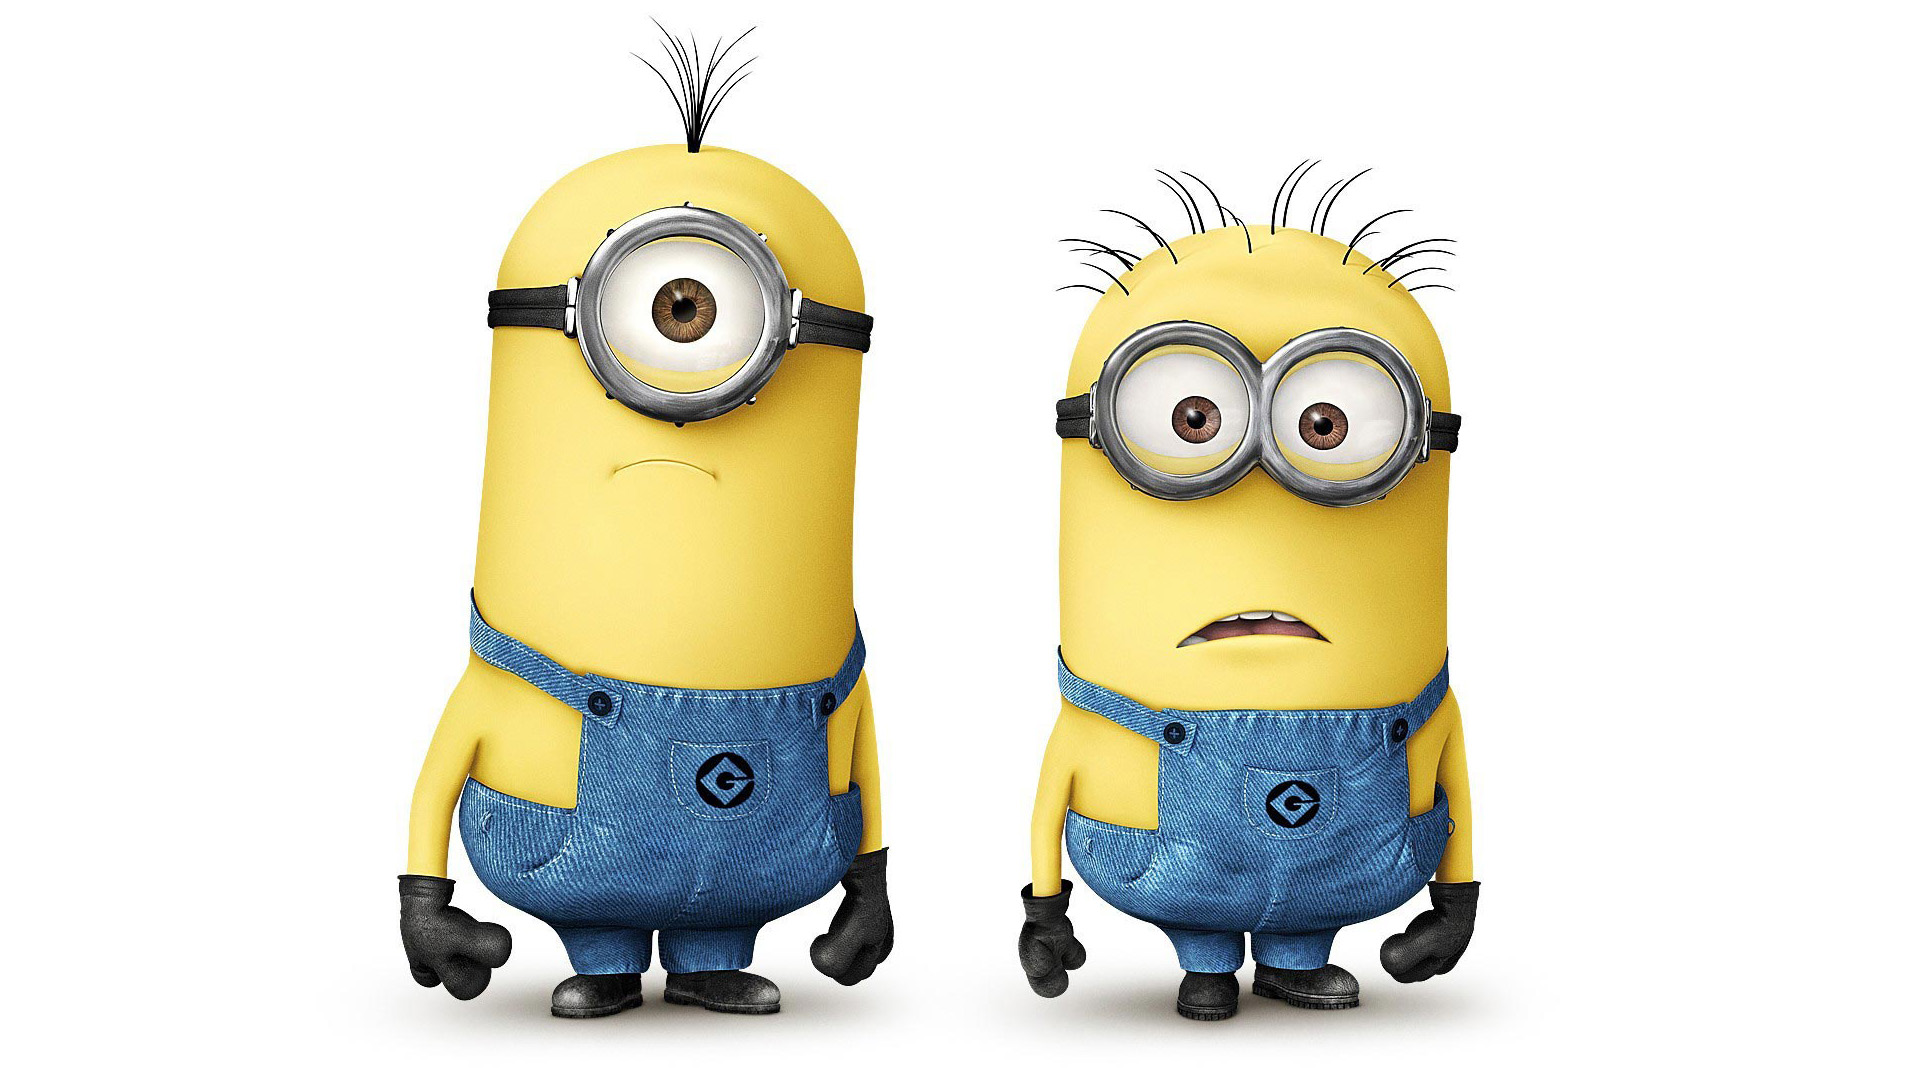 Despicable Me 2 Minions 2492.13 Kb